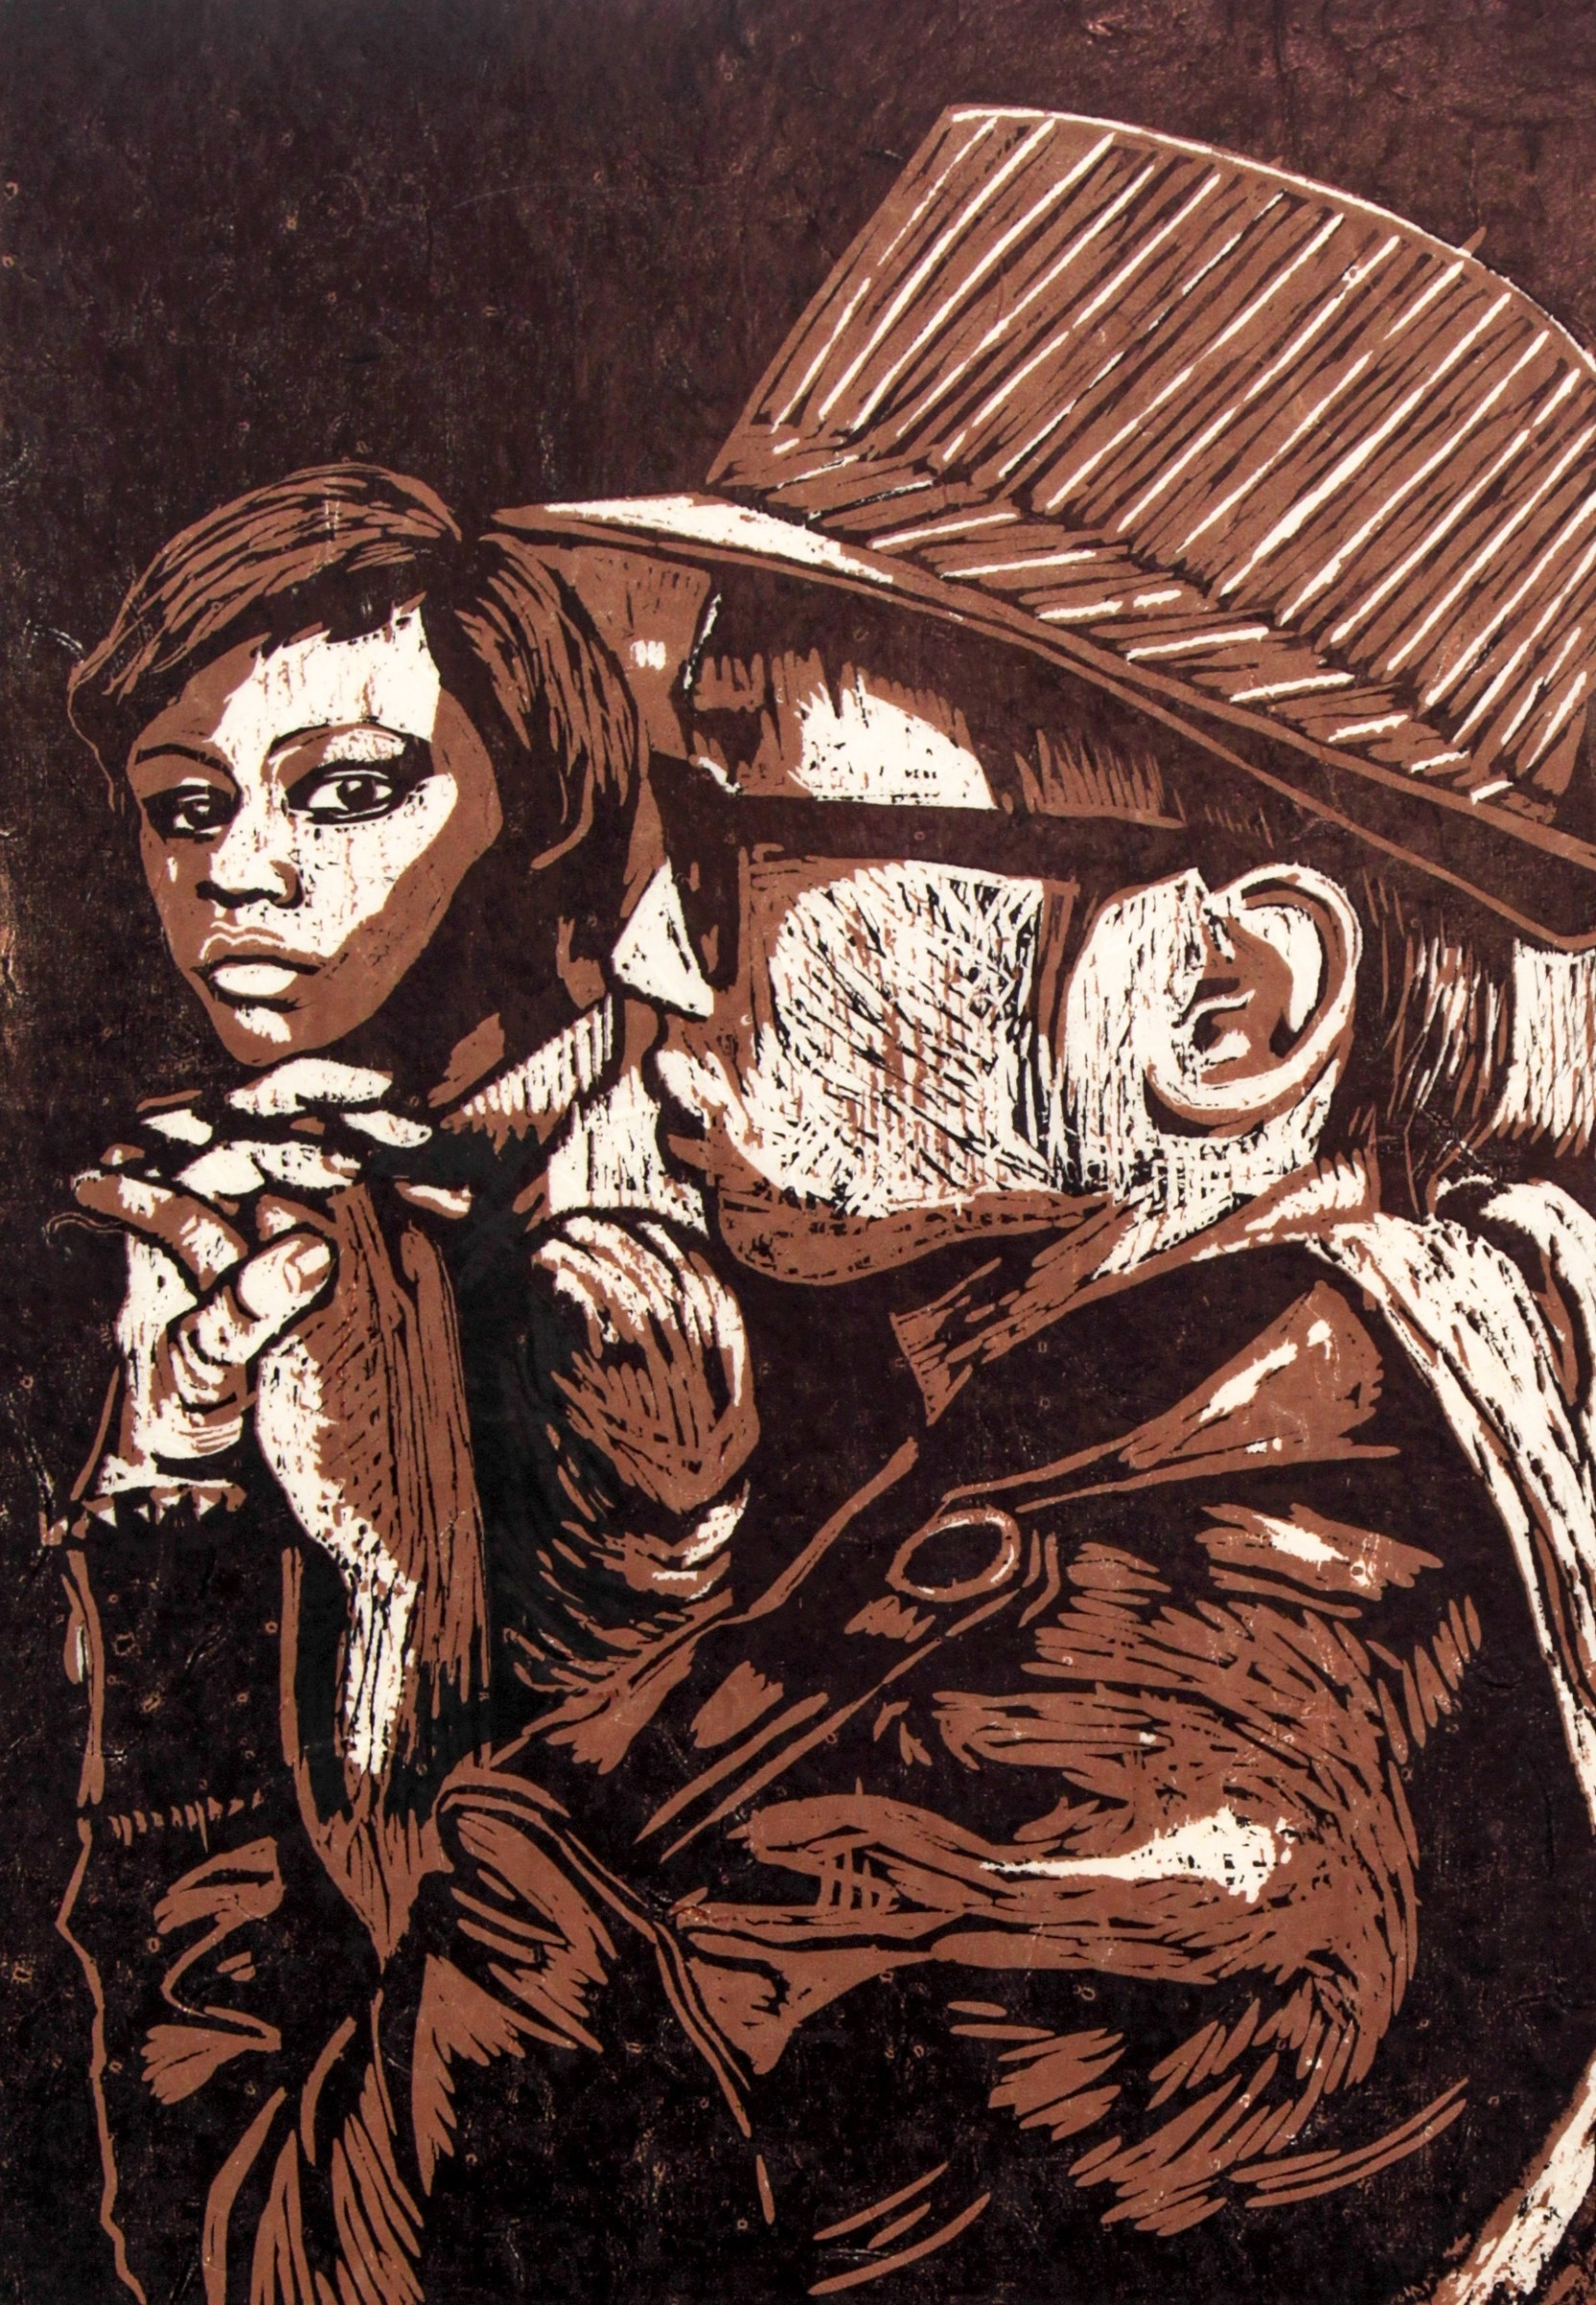 "<span class=""link fancybox-details-link""><a href=""/exhibitions/18/works/image_standalone961/"">View Detail Page</a></span><p>Denise Ballard Wyllie</p><p>Being Together, Estandos Juntos</p><p>woodcut</p><p>63 x 45cm</p><p>£650 framed</p><p>£450 unframed</p>"